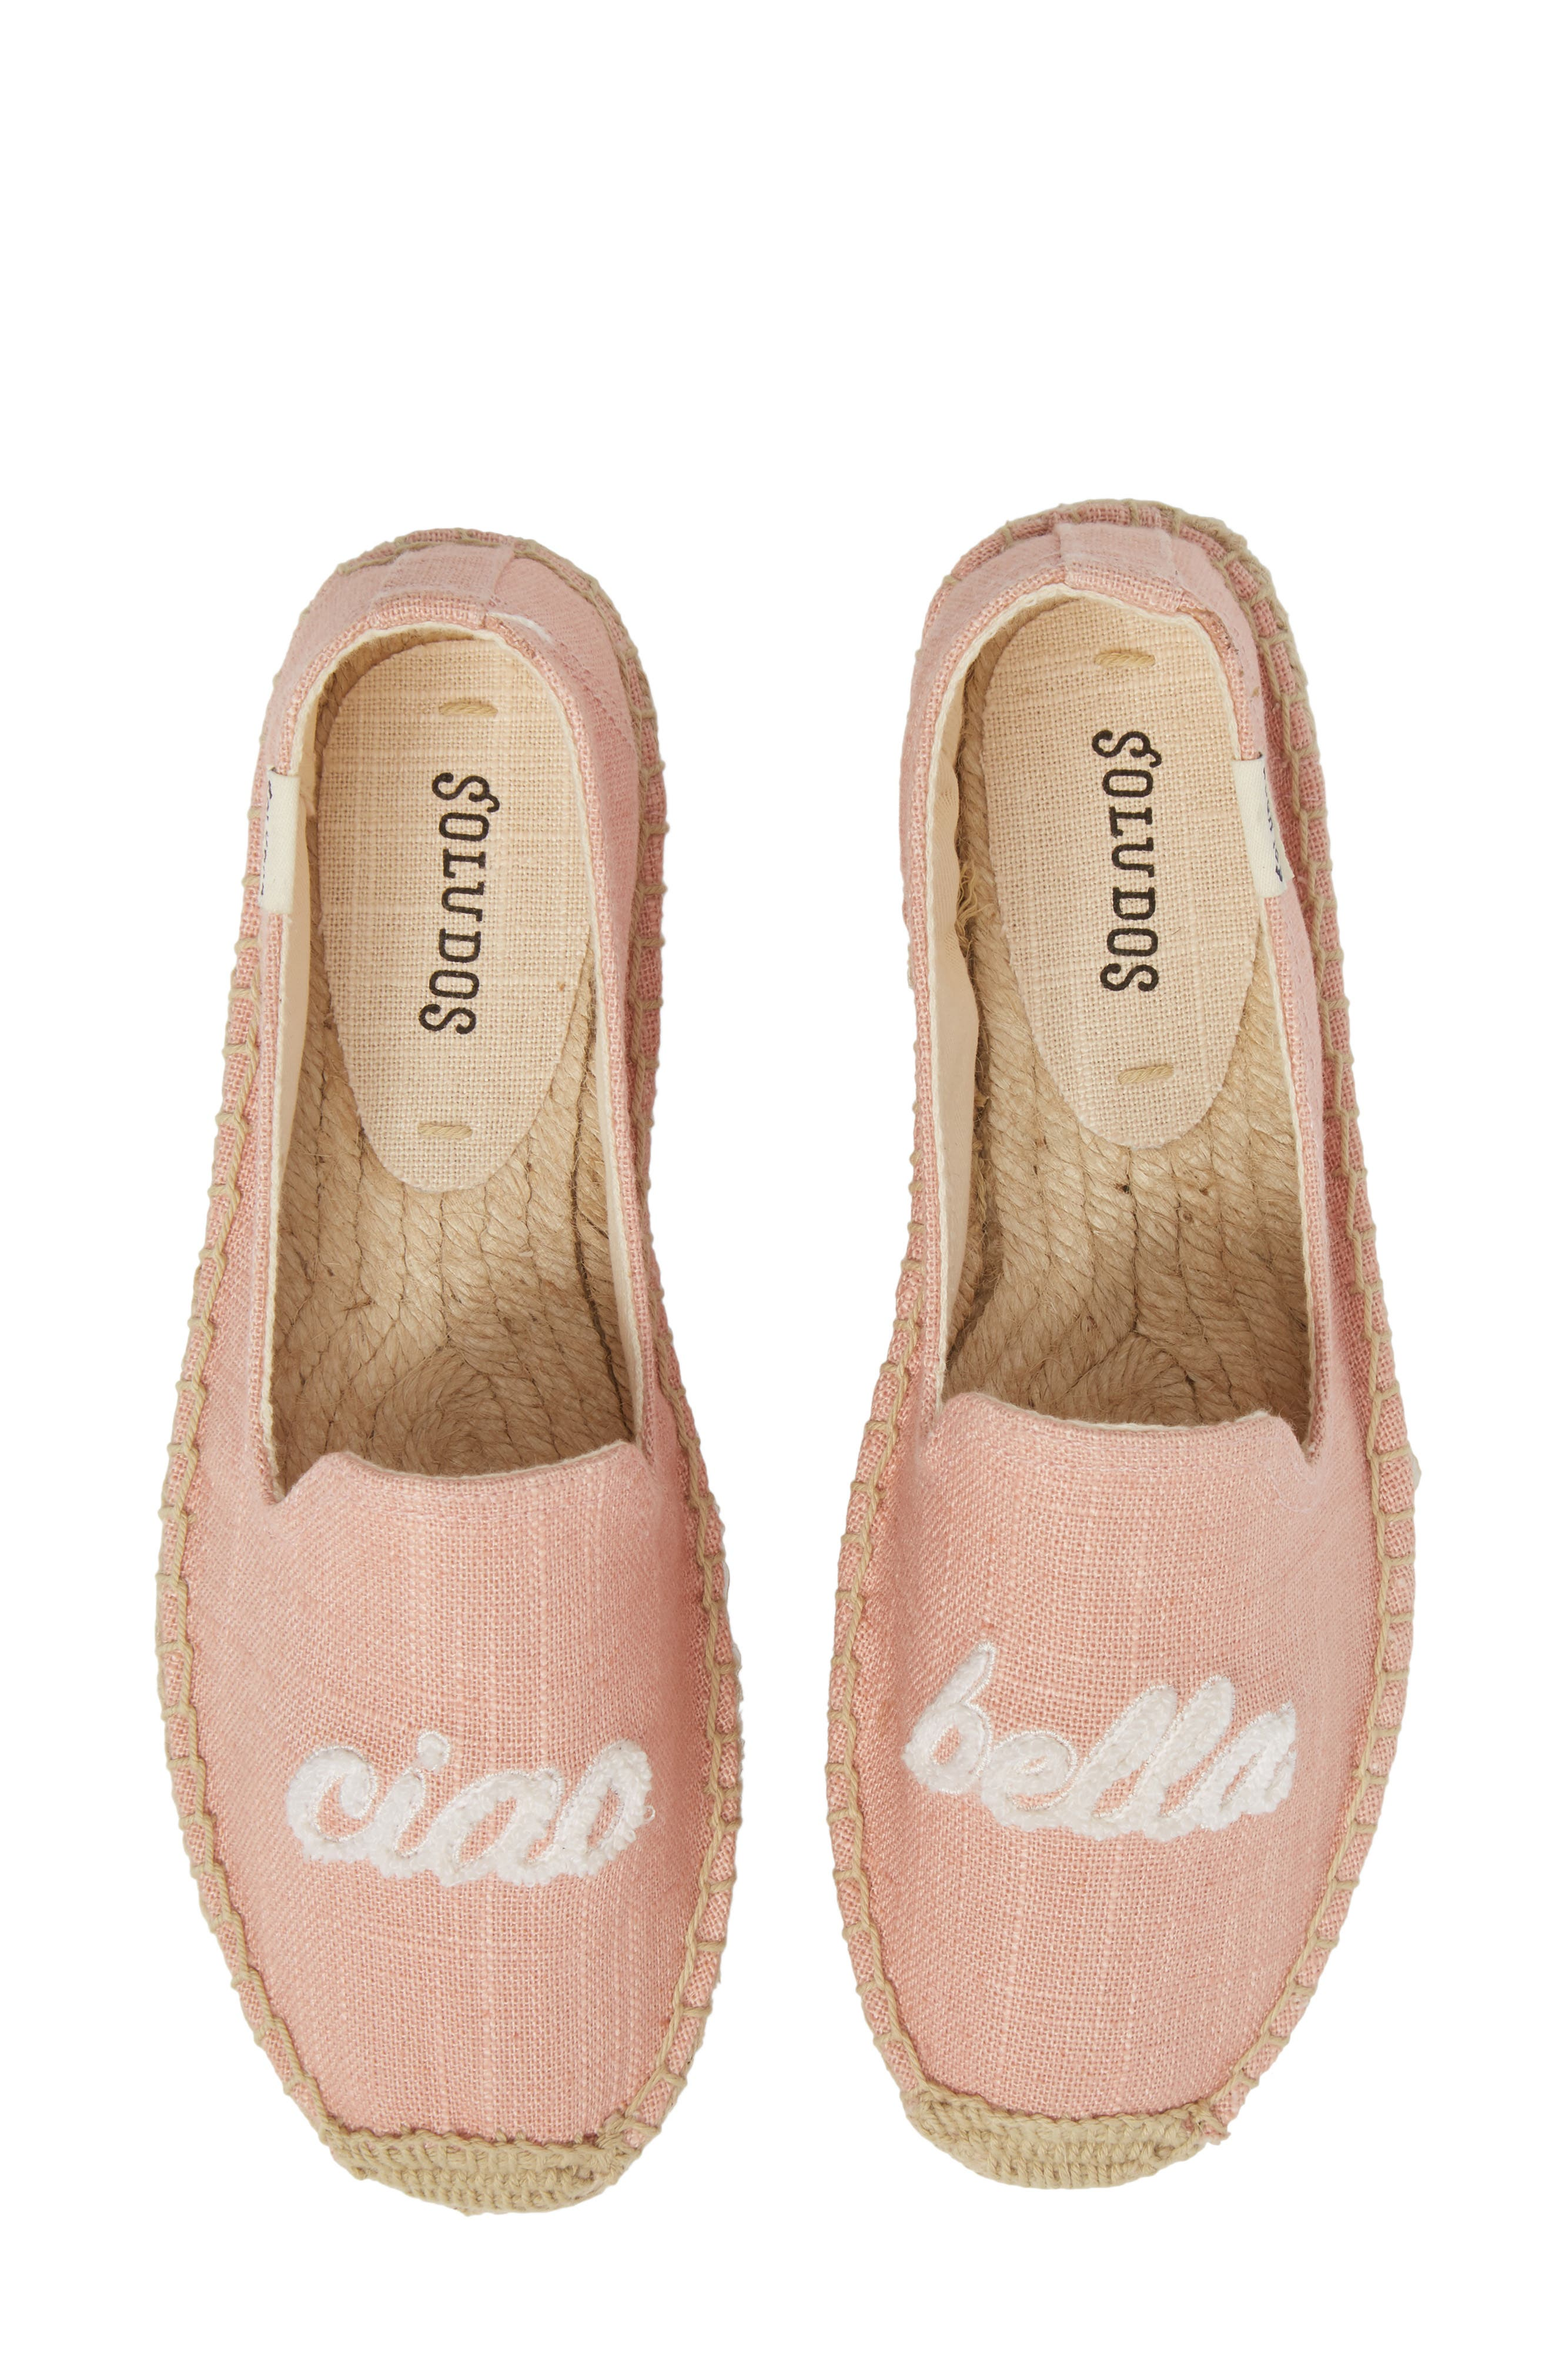 Ciao Bella Espadrille Flat,                             Main thumbnail 1, color,                             DUSTY ROSE FABRIC